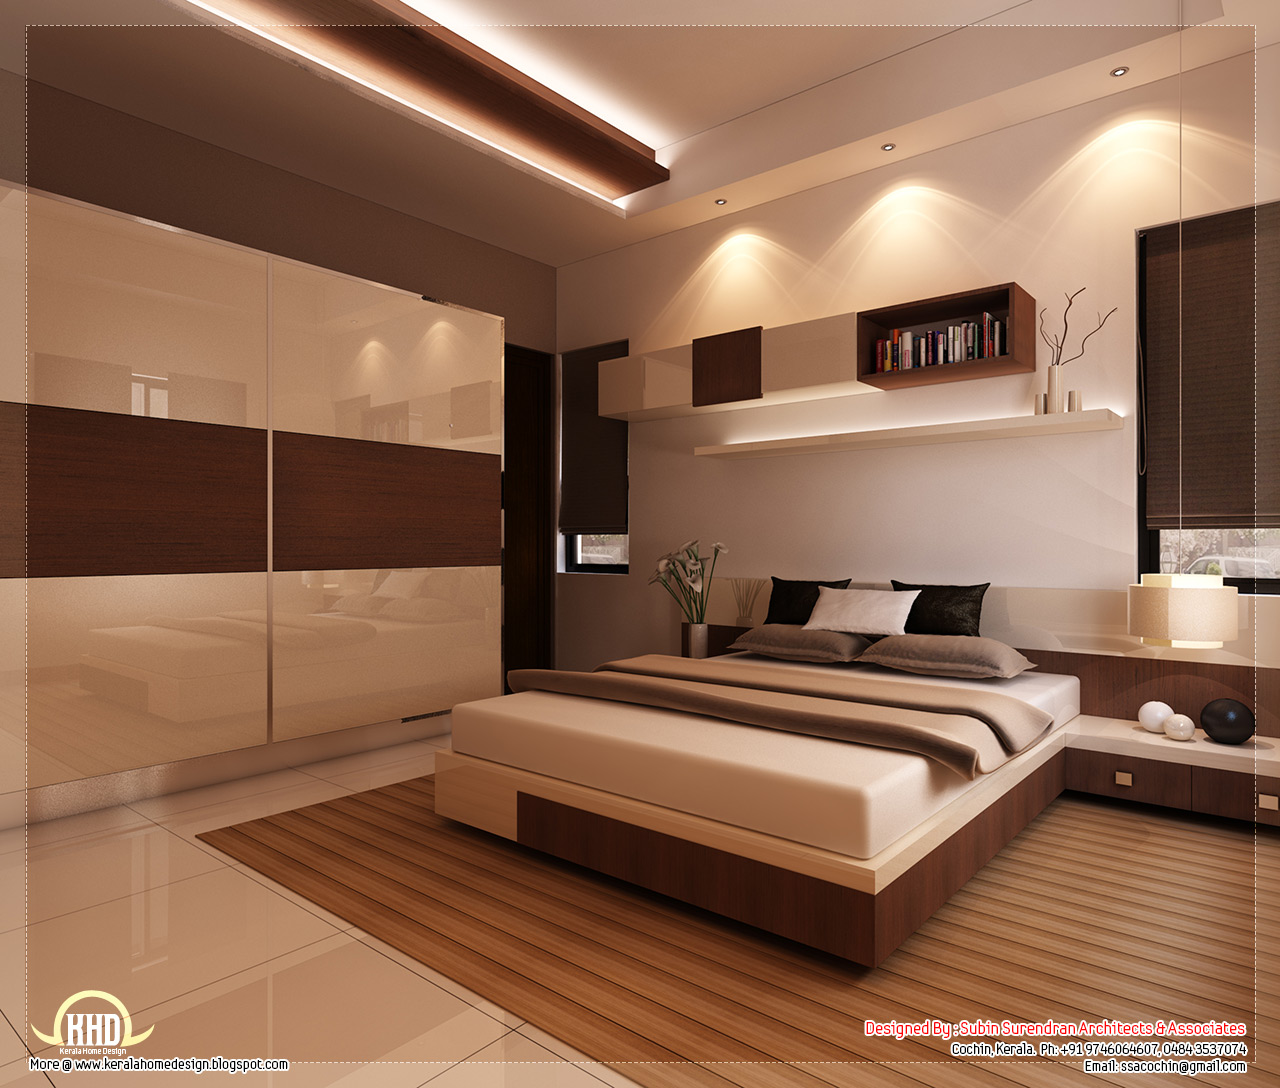 kerala style bedroom interior design low budget interior designbeautiful home interior designs kerala homeskitchen modular dining room interior bedroom interior